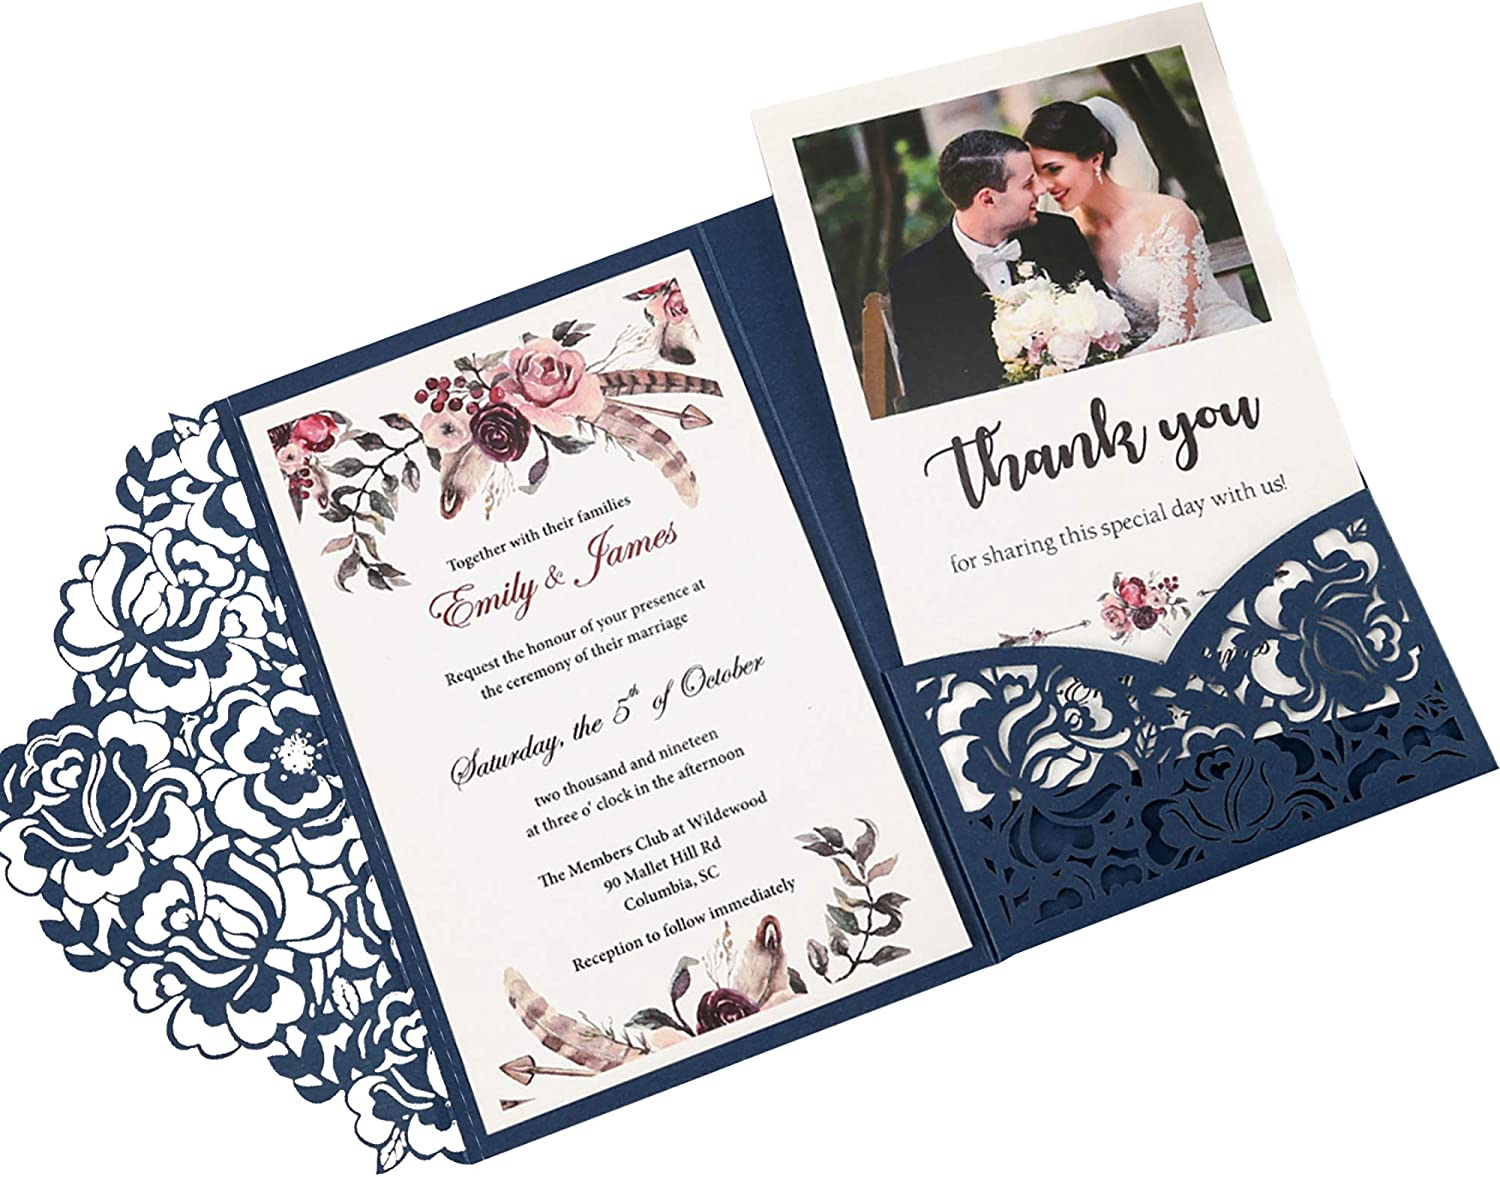 DORISHOME 4.7x7 Inch 50PCS Blank Navy Blue Wedding Invitations Kits Laser Cut Hollow Rose Pocket Wedding Invitations with Envelopes For Wedding Bridal Shower Engagement Invite